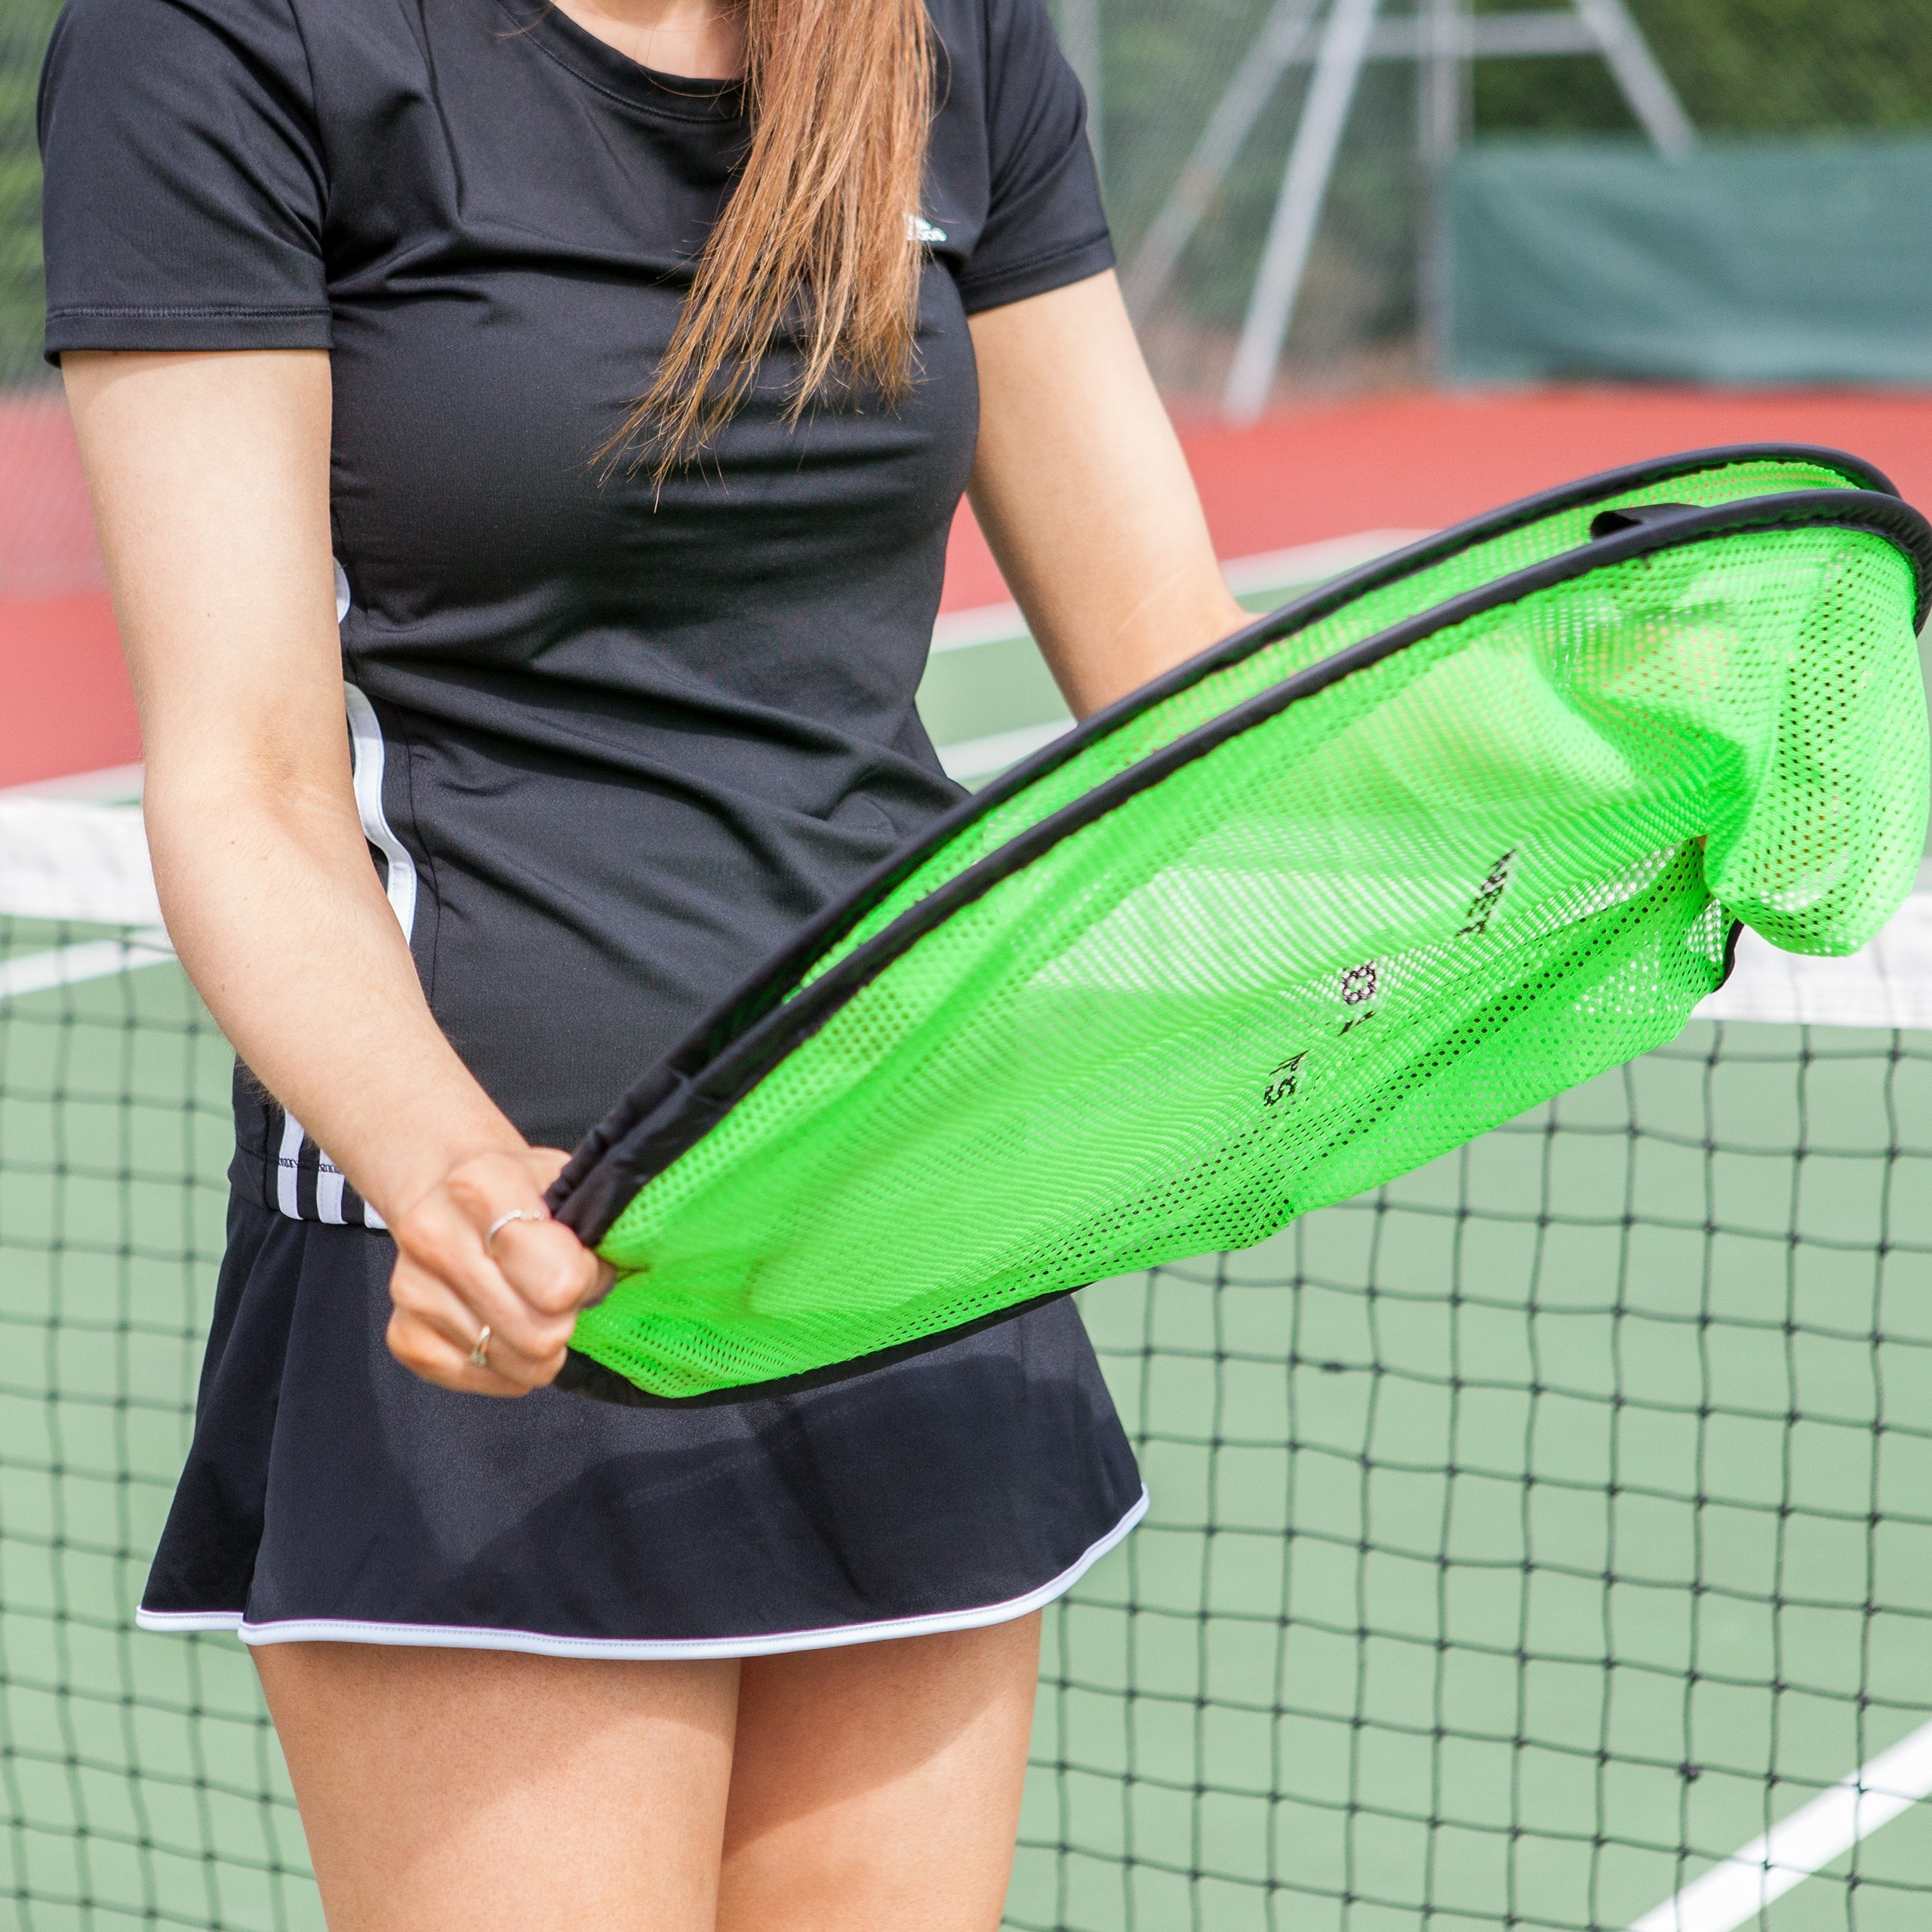 Easy Fold Tennis Net Targets